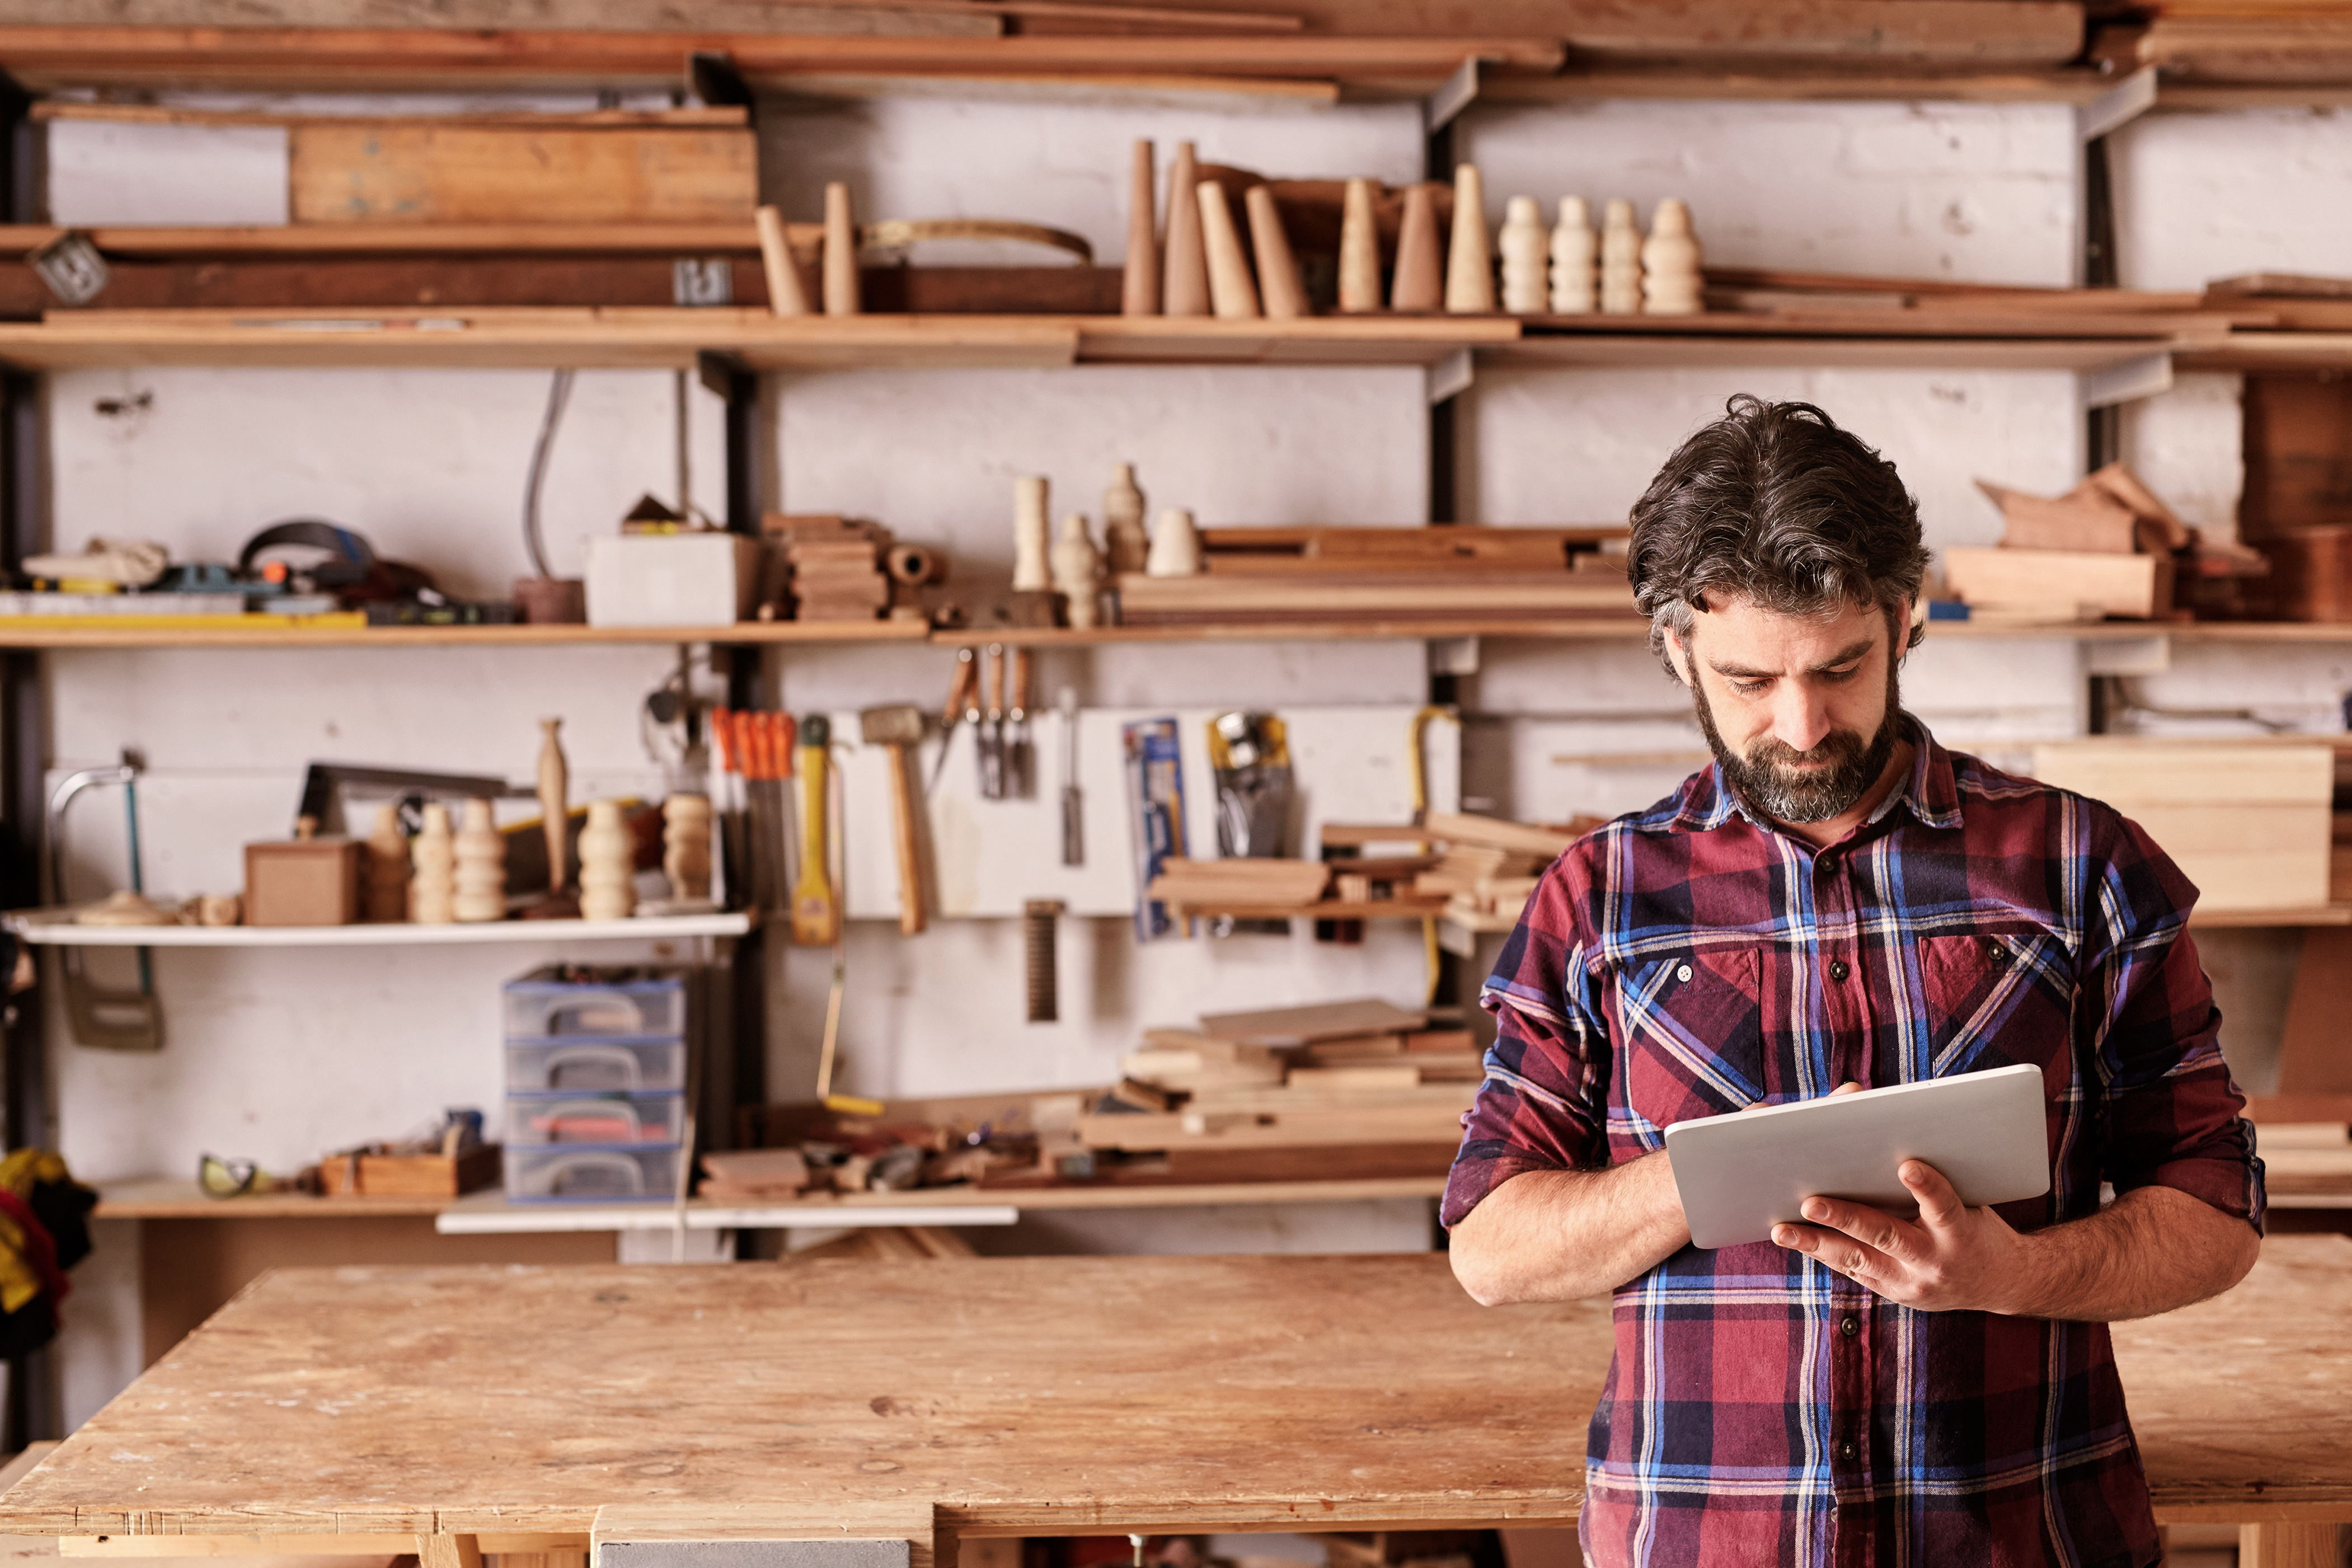 A Small Business Owner In A Wood Shop